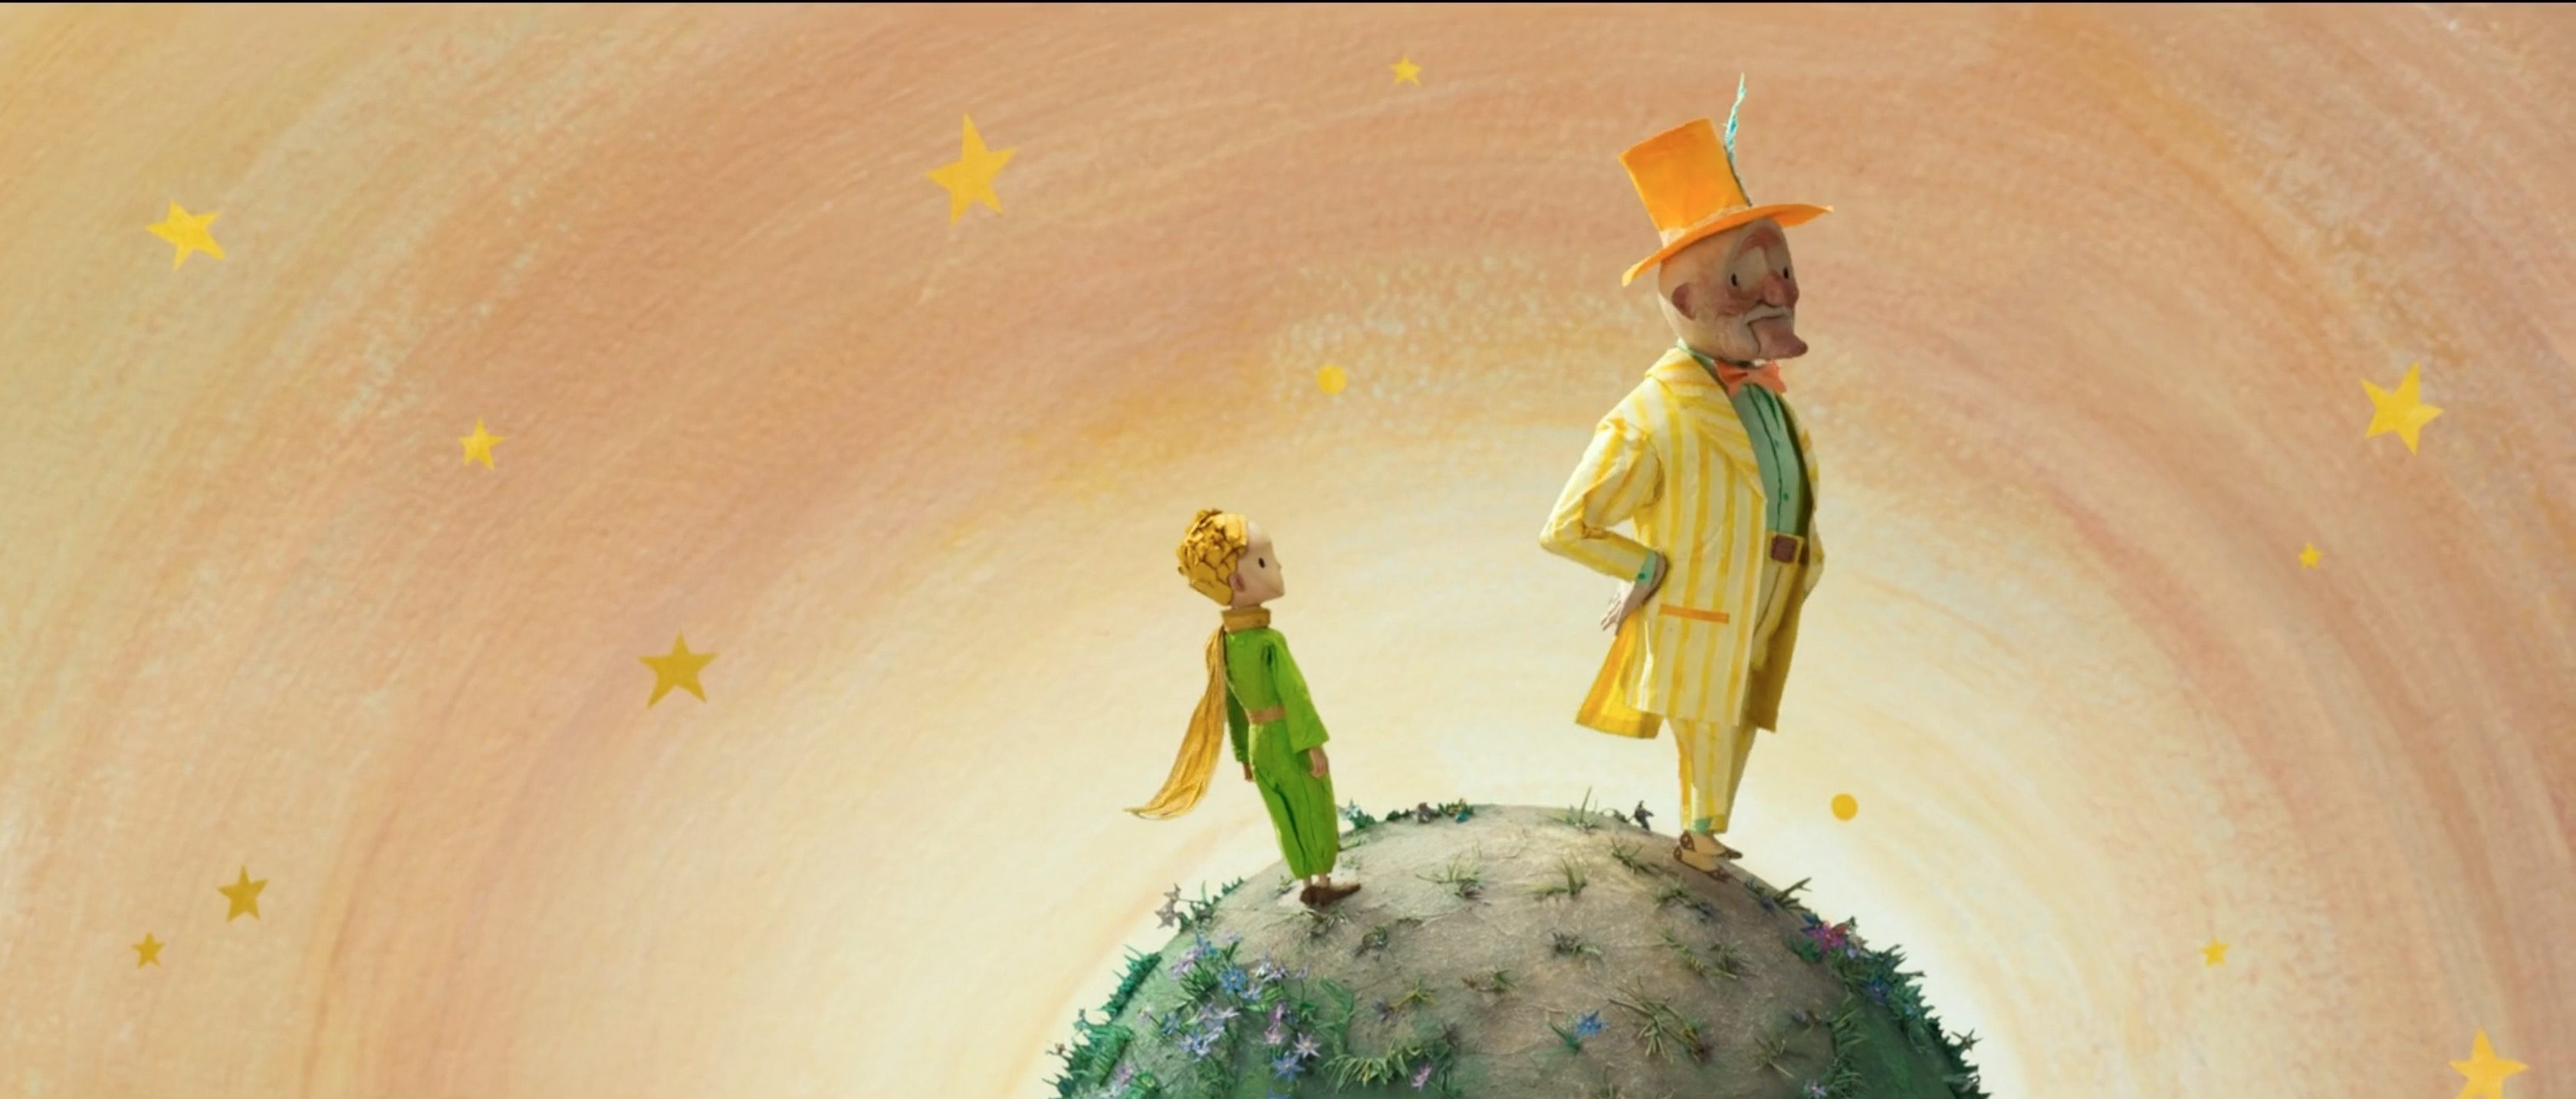 the little prince - photo #40